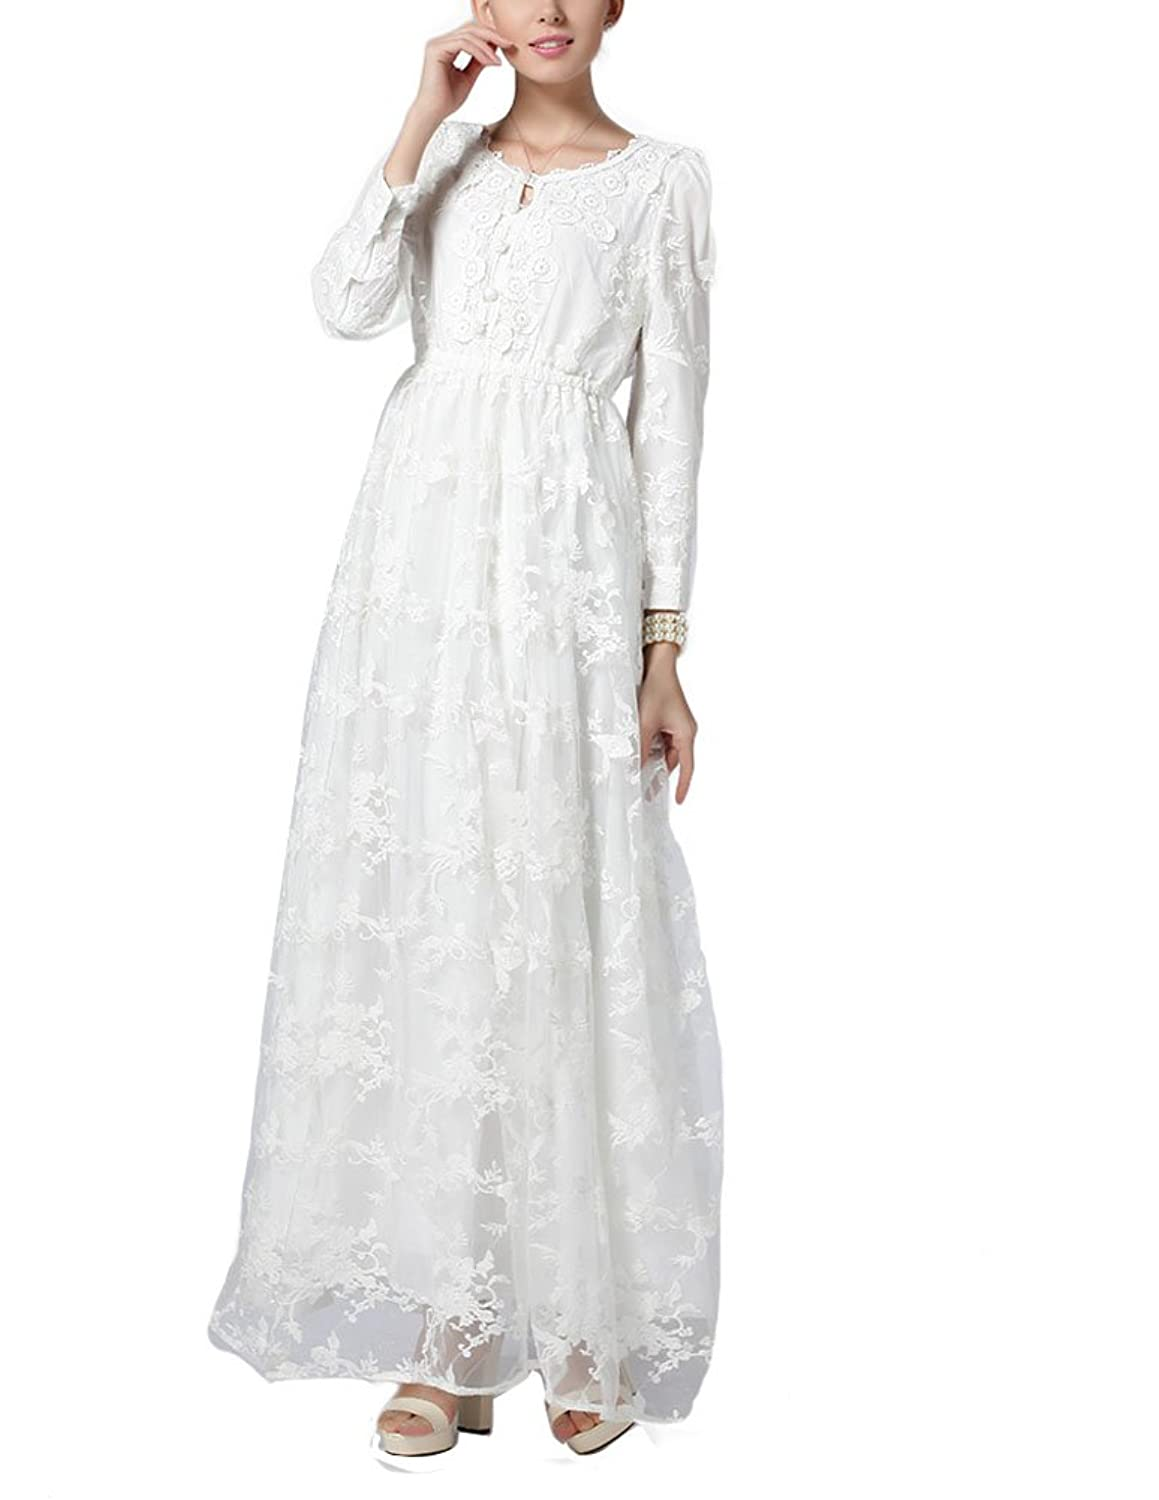 Edwardian Costumes – Cheap Halloween Costumes Three Layers Crochet Embroidery Craft Lace Wedding Dress LYQ0156 $49.99 AT vintagedancer.com